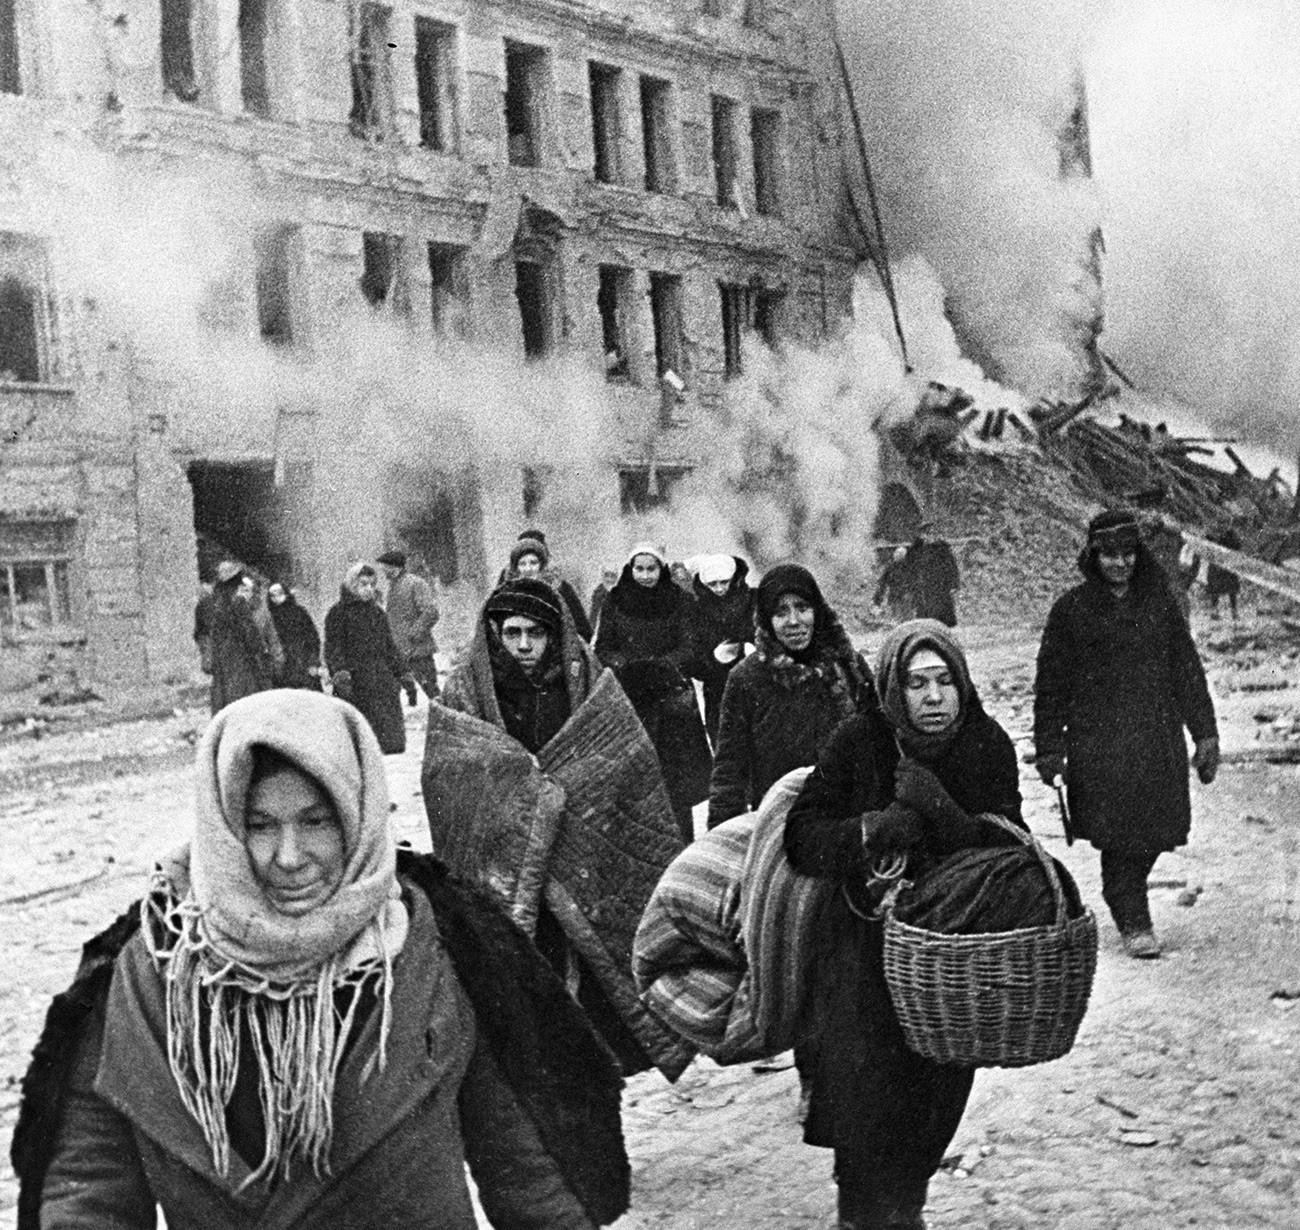 Citizens of Leningrad during the siege of the city.